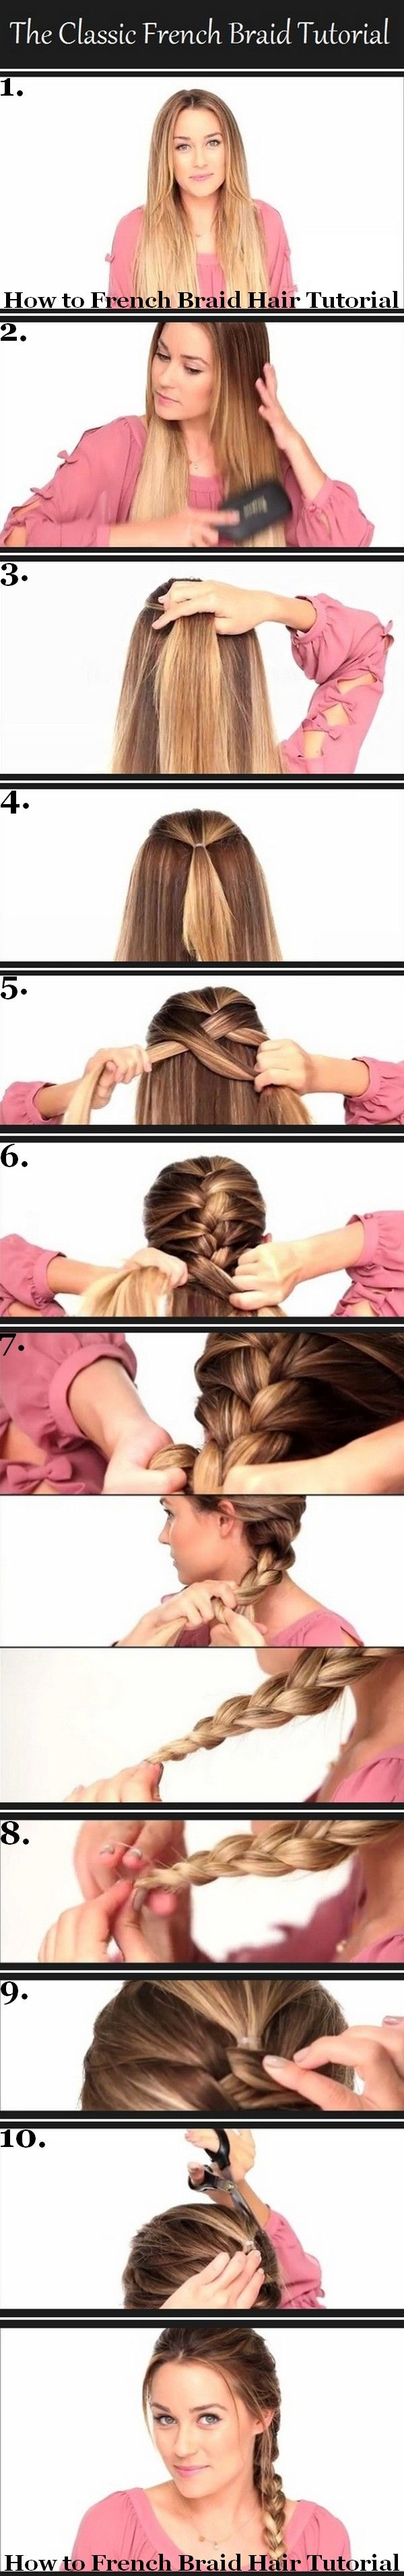 When I see this tutorial all I can think about is accidentally cutting off all my hair. If DIE.